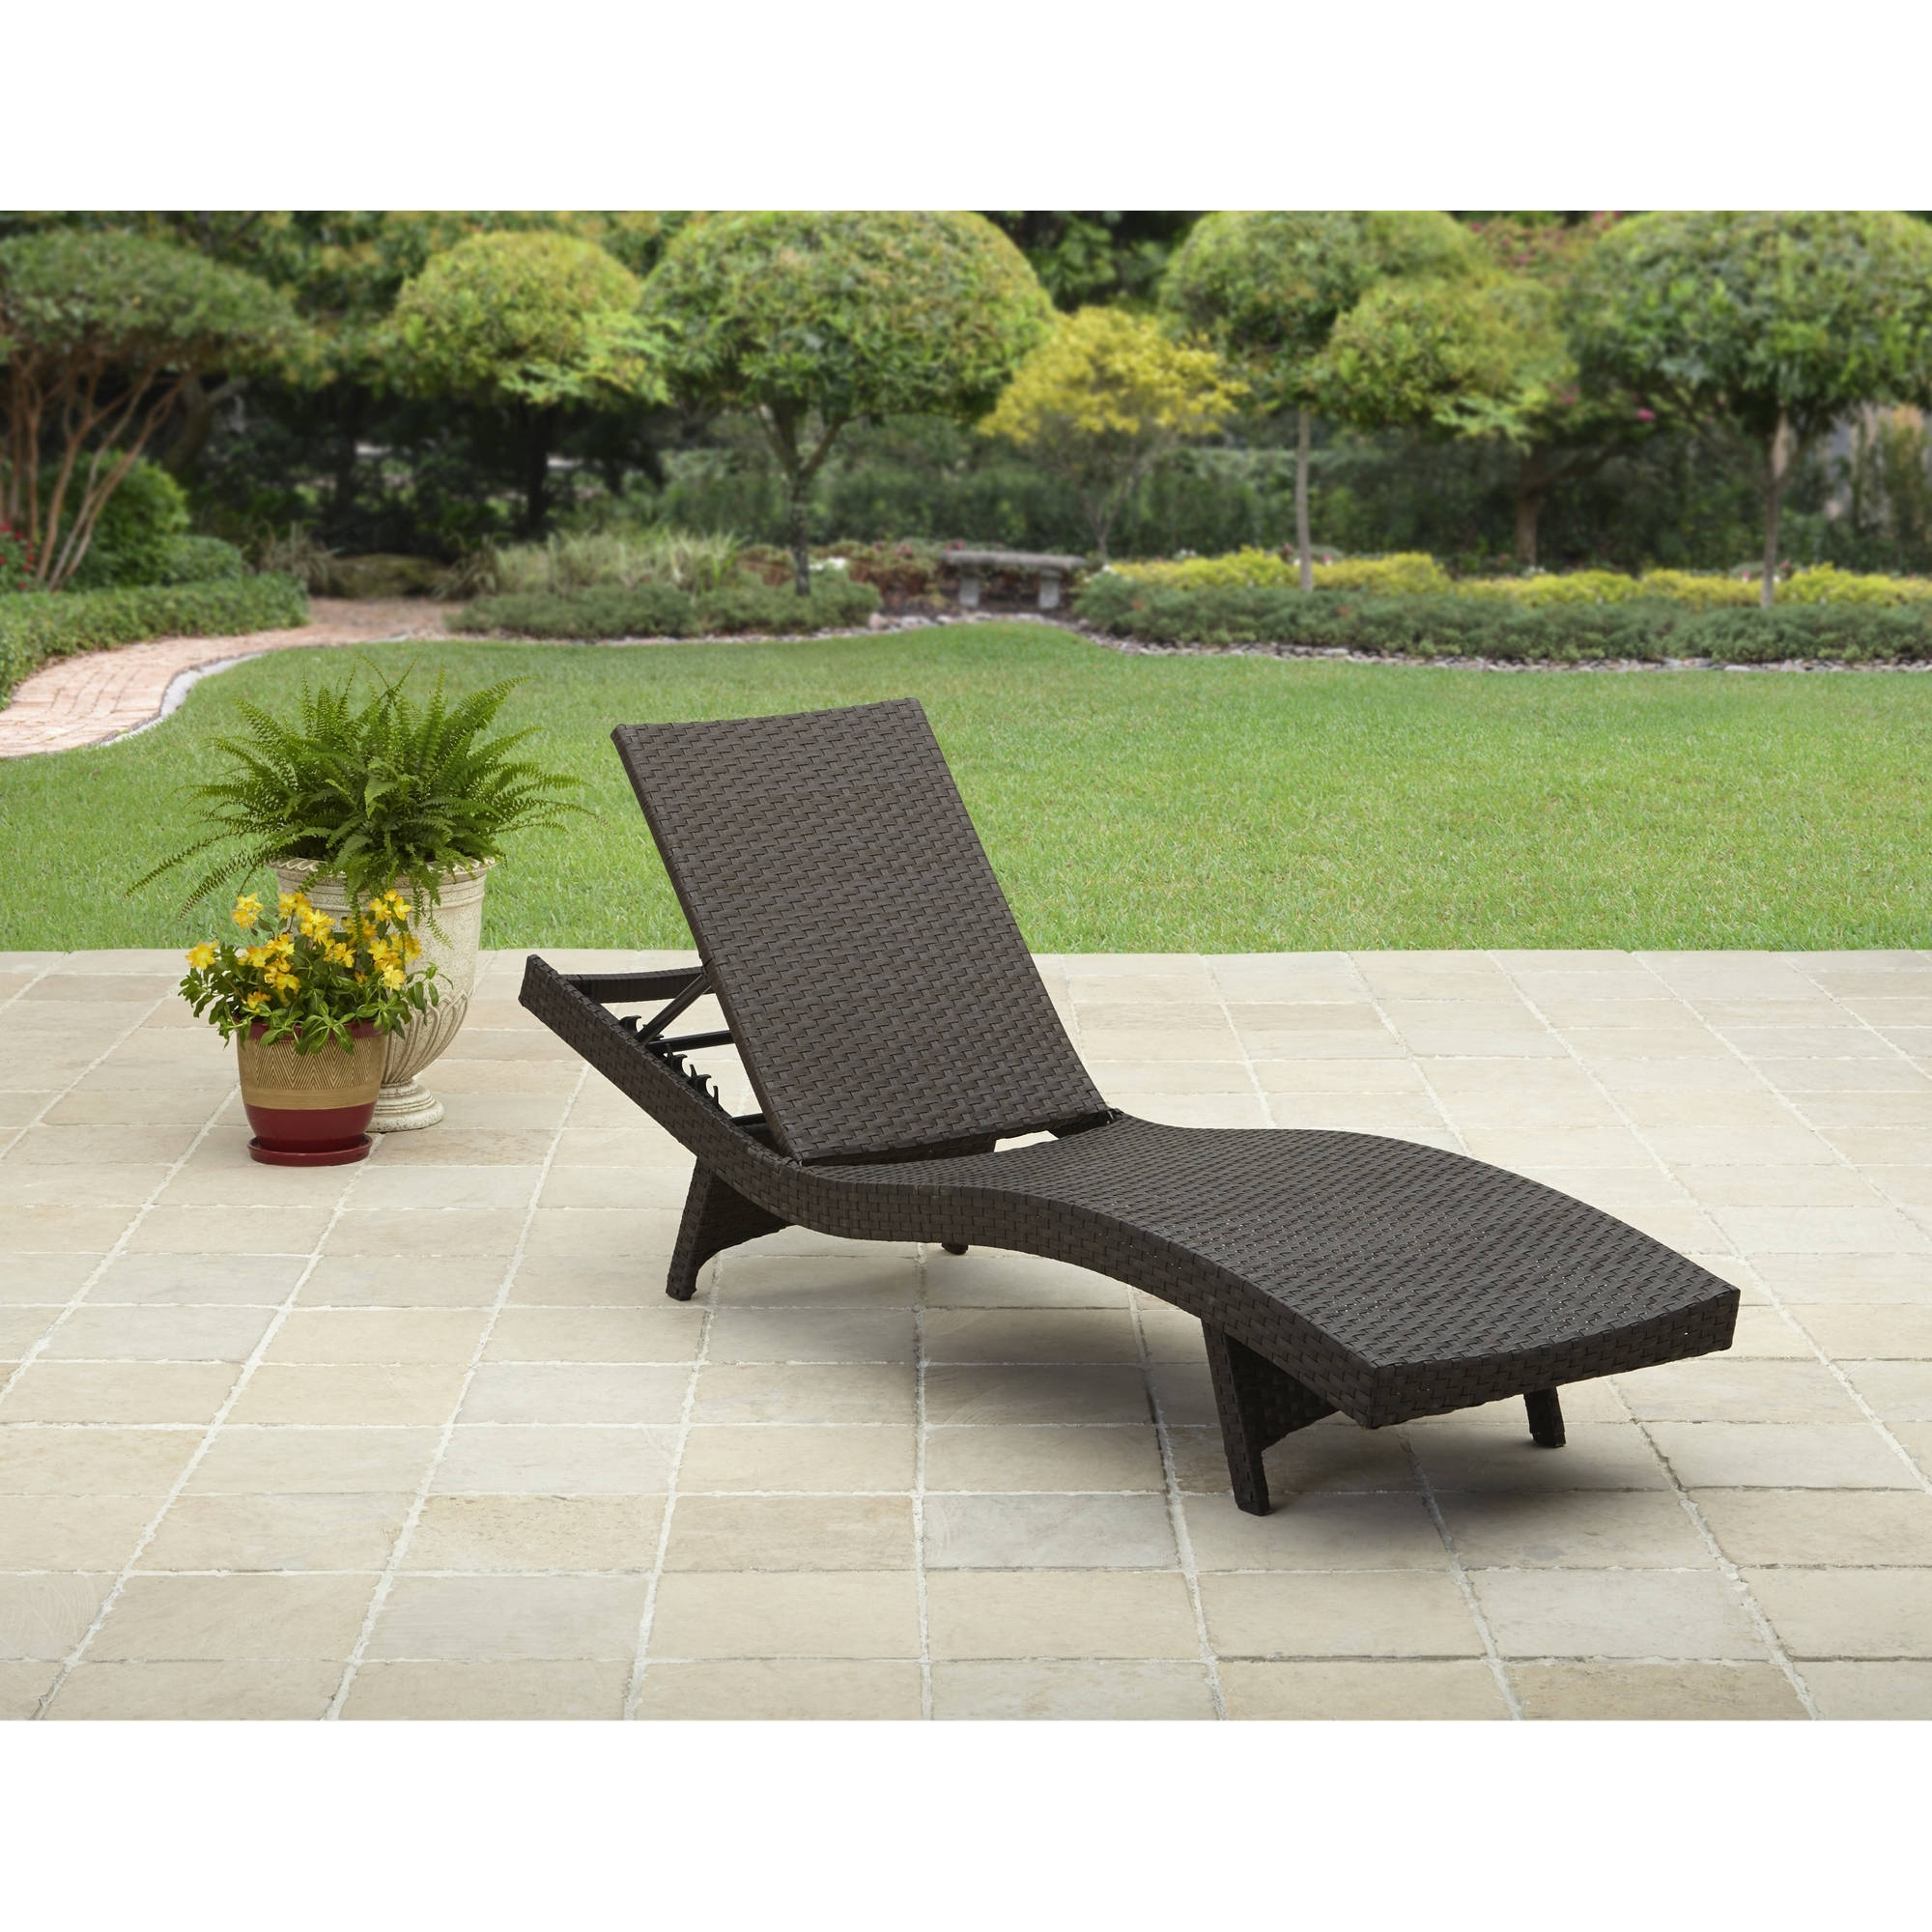 Current Better Homes And Gardens Avila Beach Chaise – Walmart With Regard To Walmart Chaises (View 2 of 15)